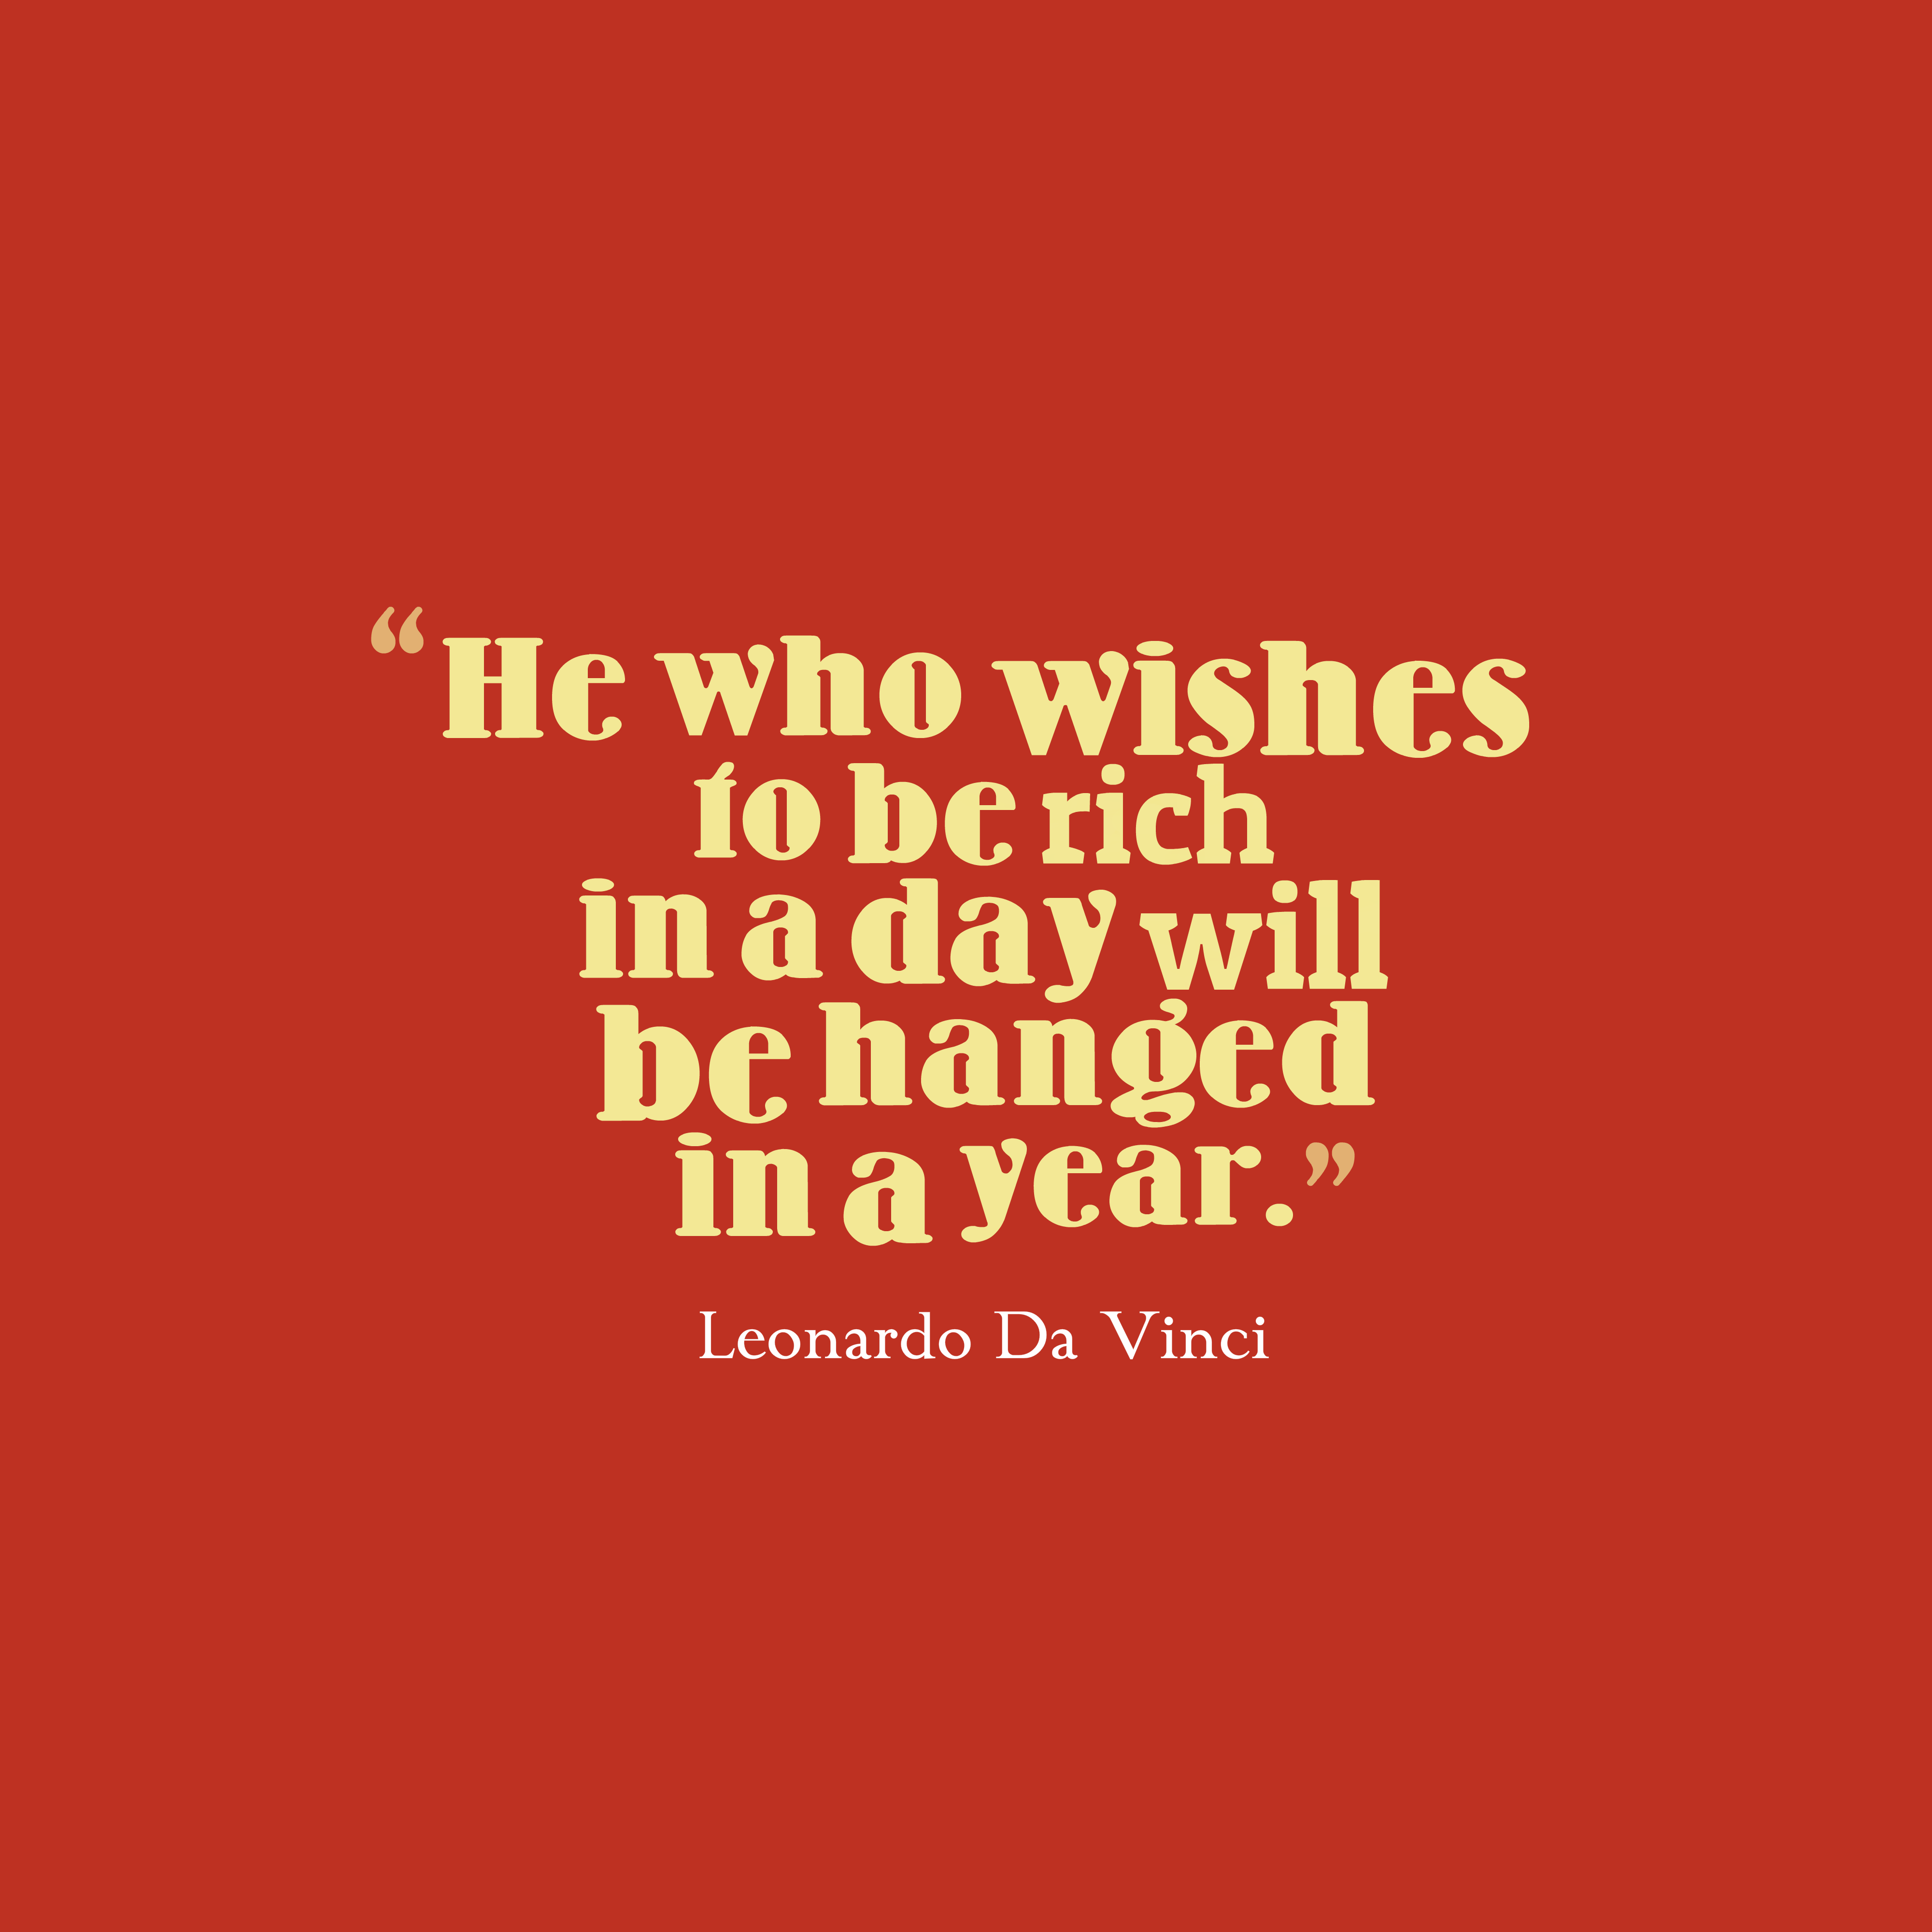 Quotes image of He who wishes to be rich in a day will be hanged in a year.